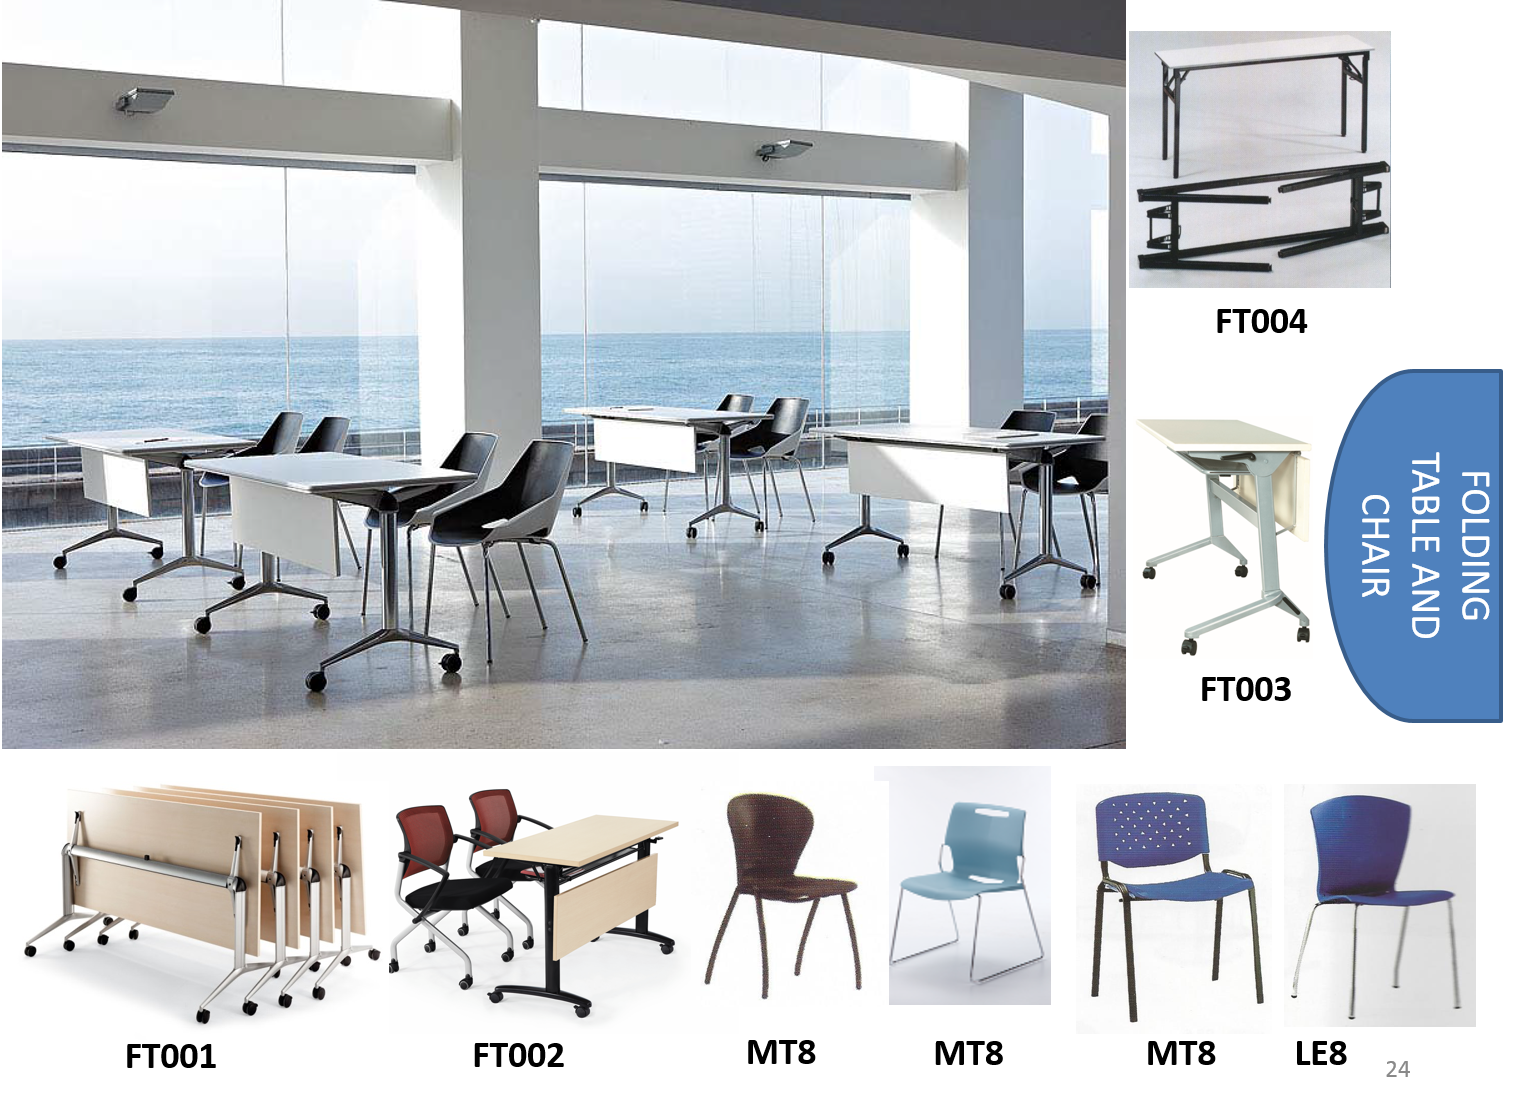 Student chair and malaysia. Clipart table study table